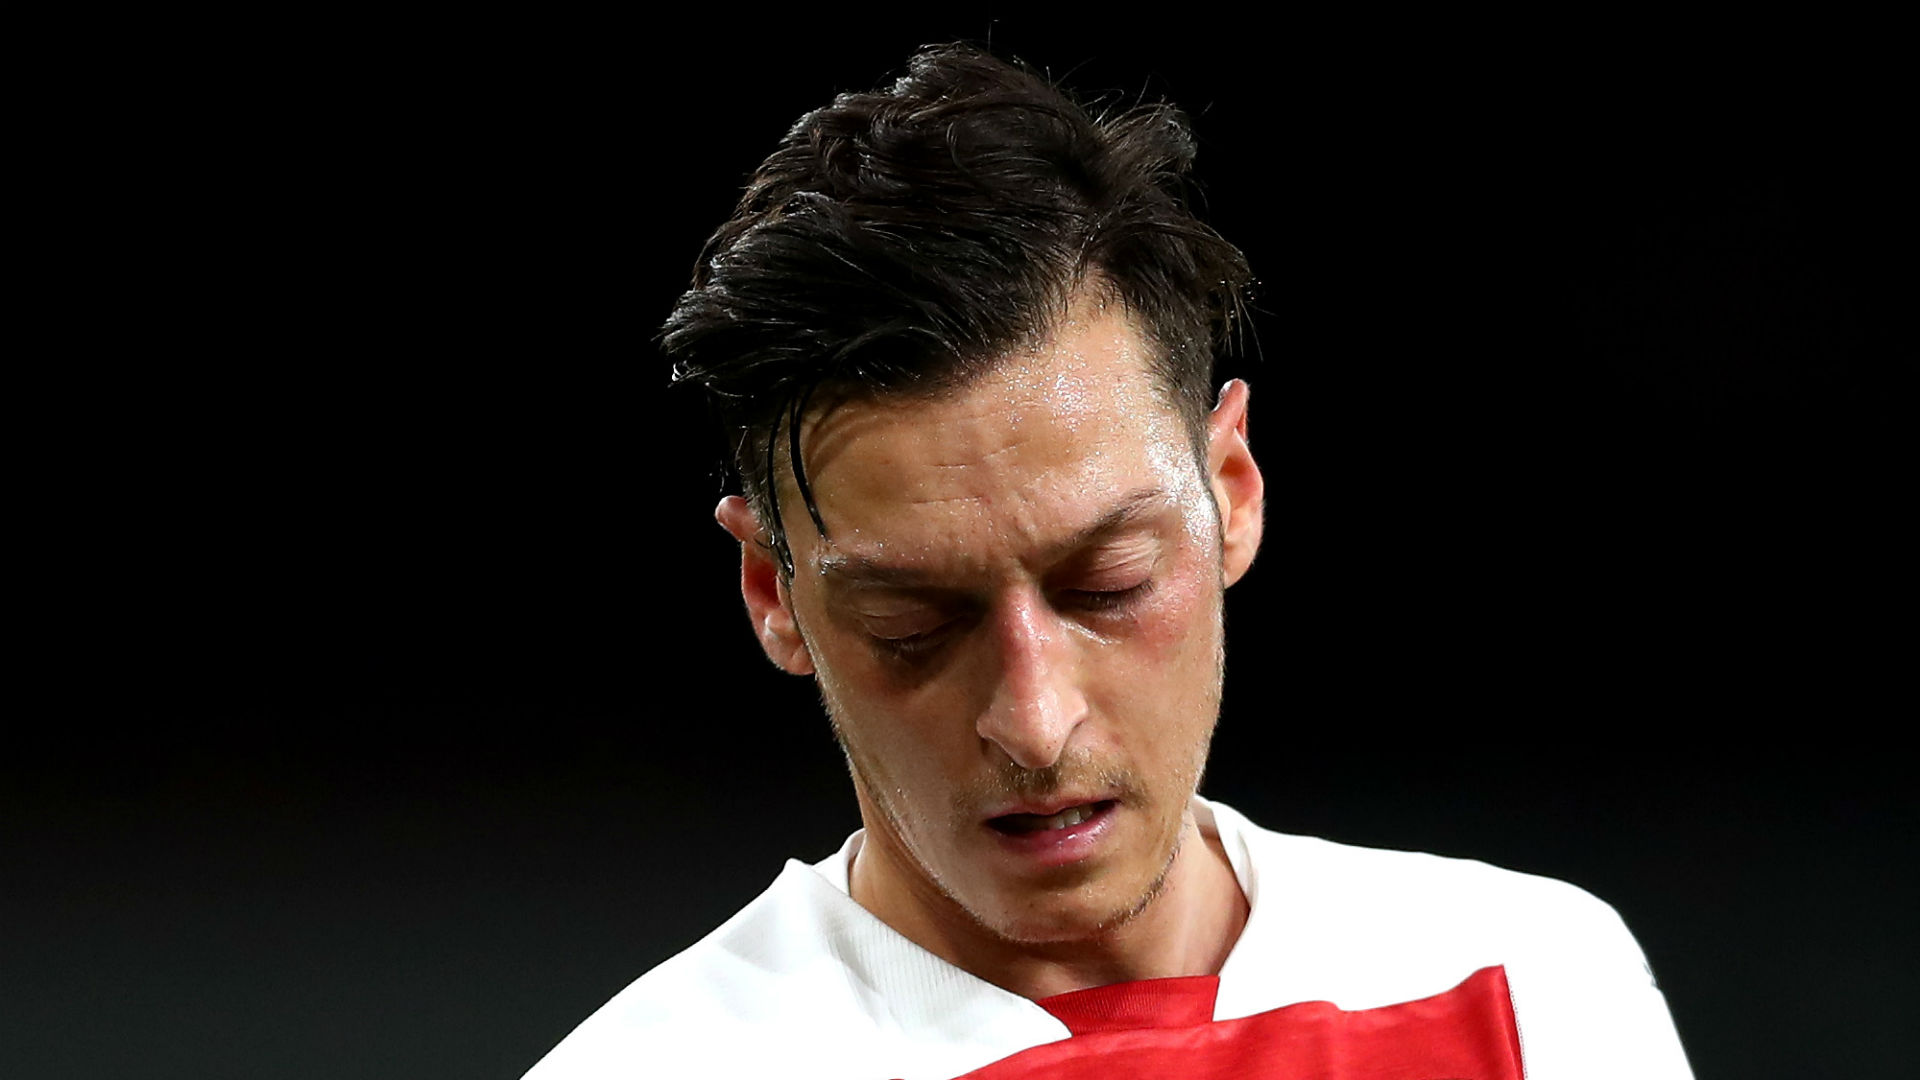 Back in a Fortnite? Ozil posts training pictures on Twitter